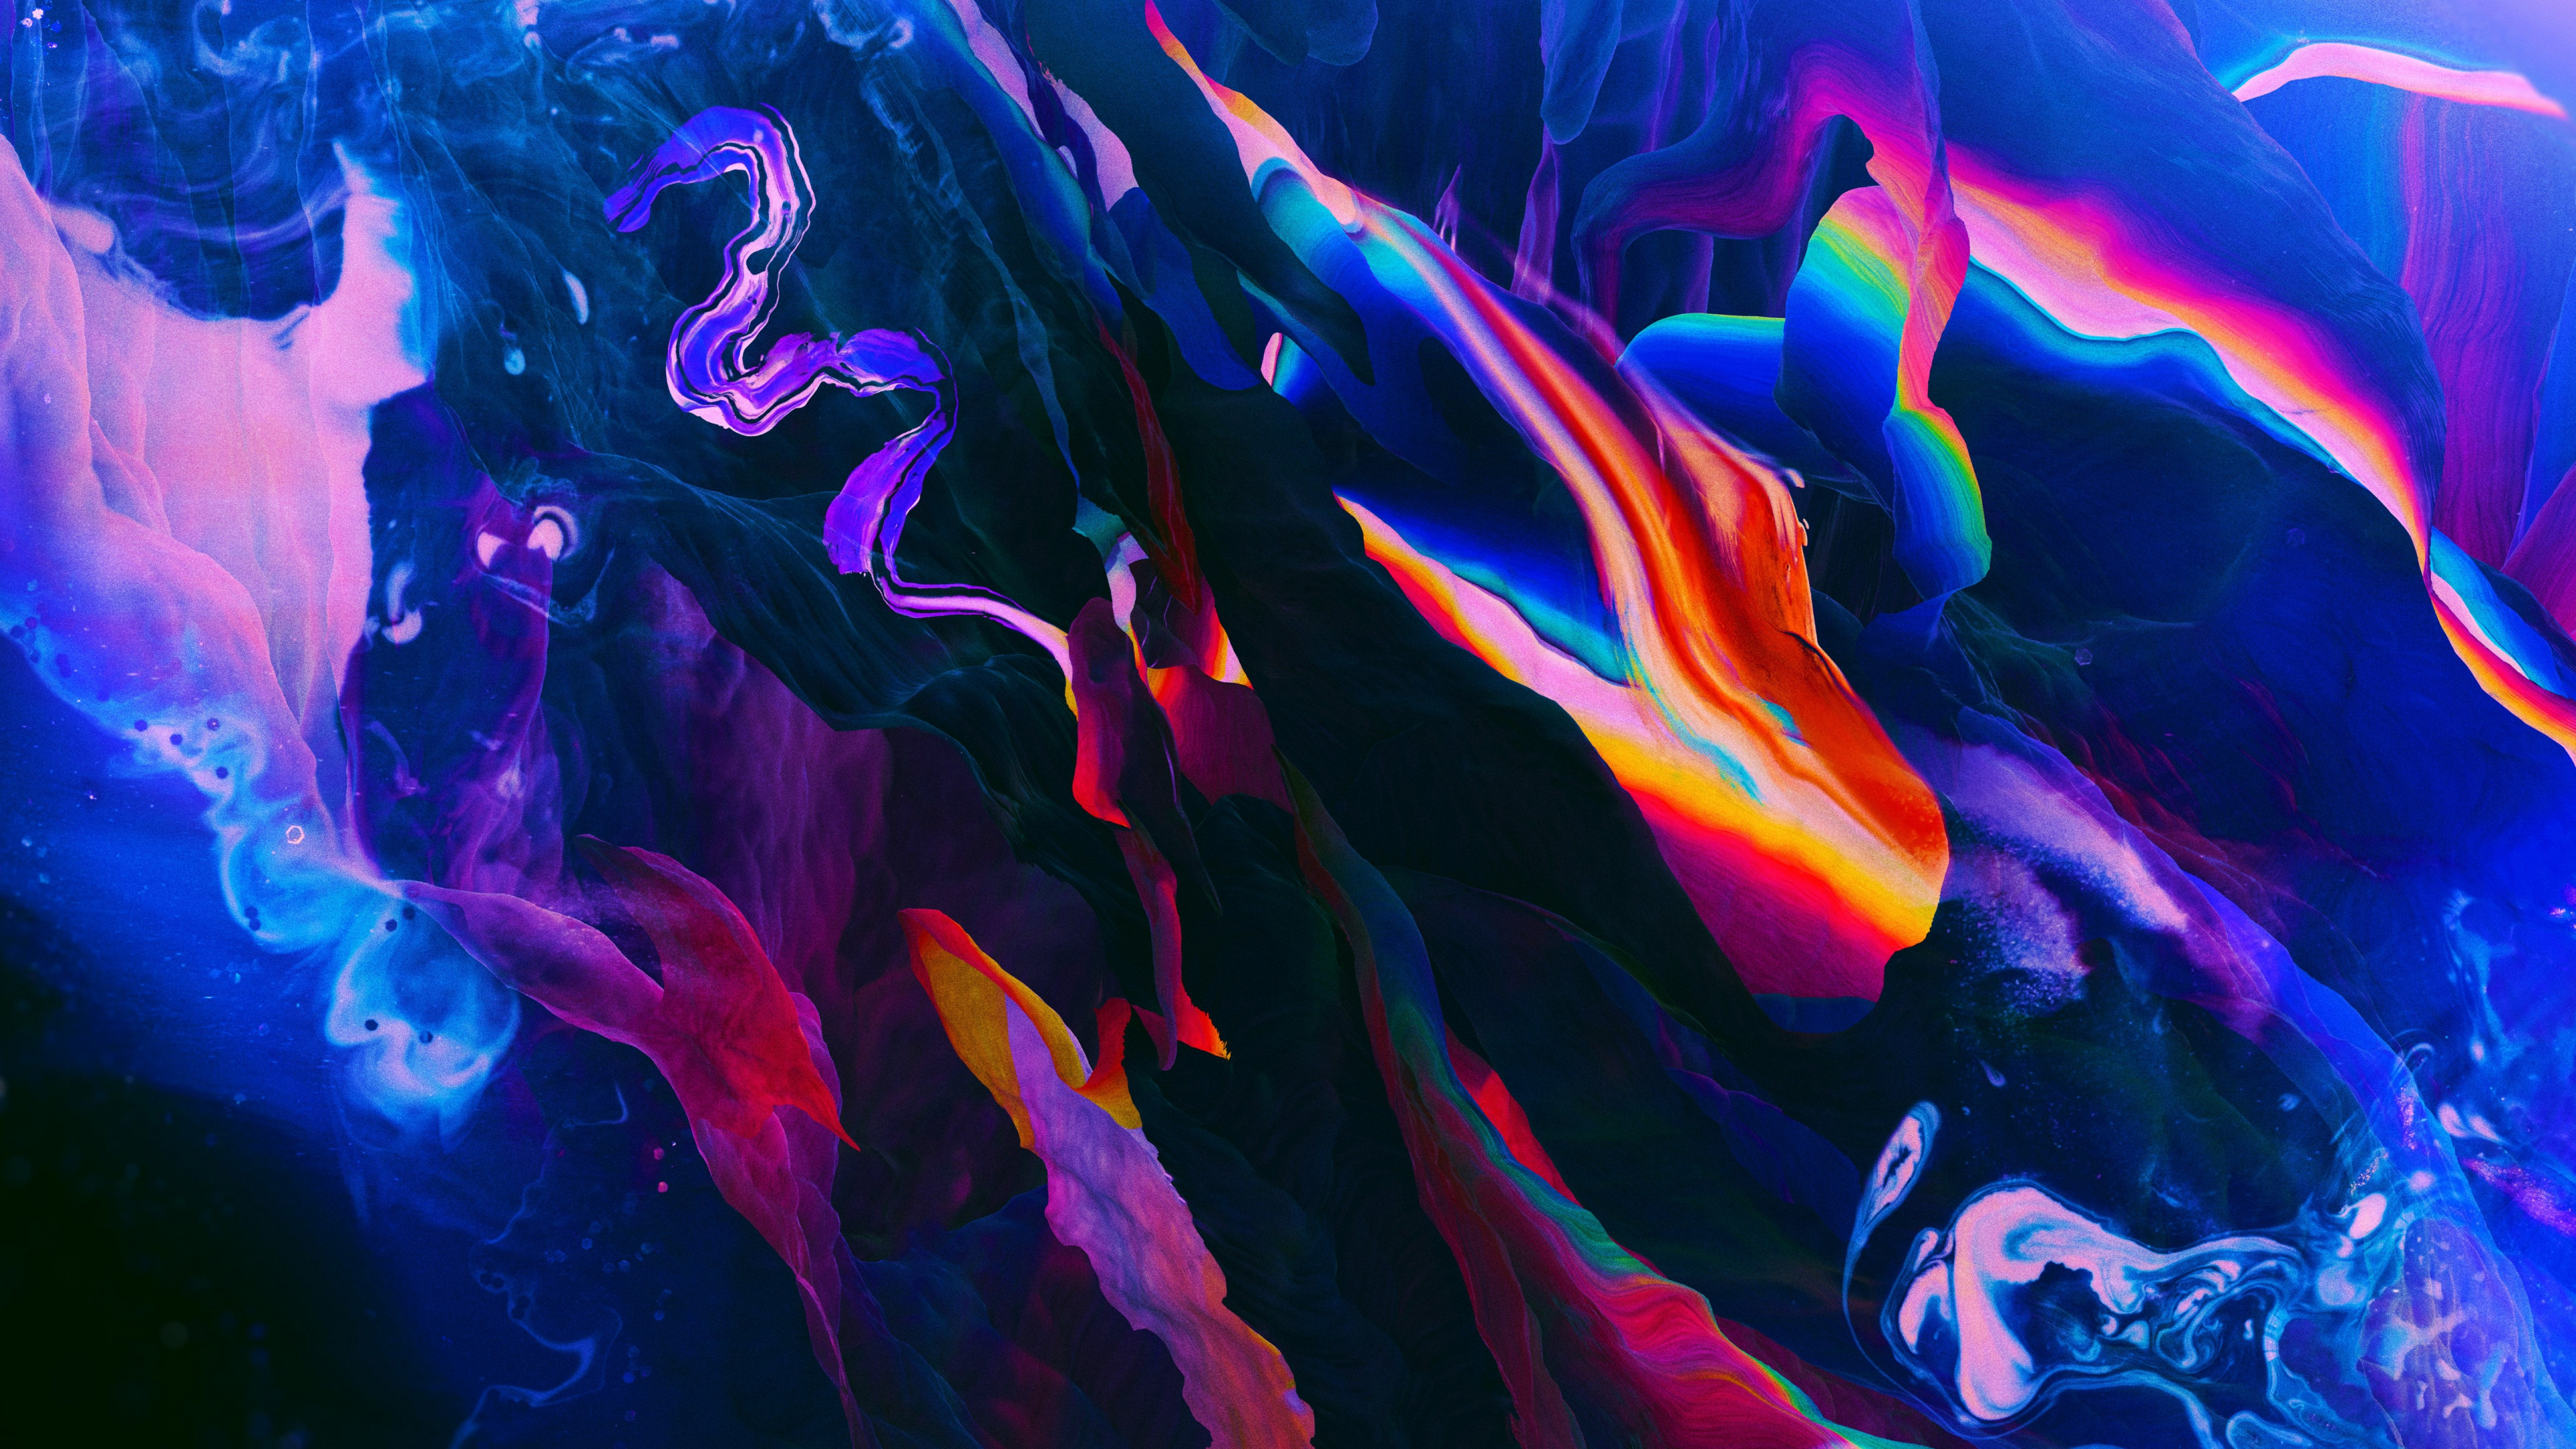 Abstract colorful wallpaper 3840x2160